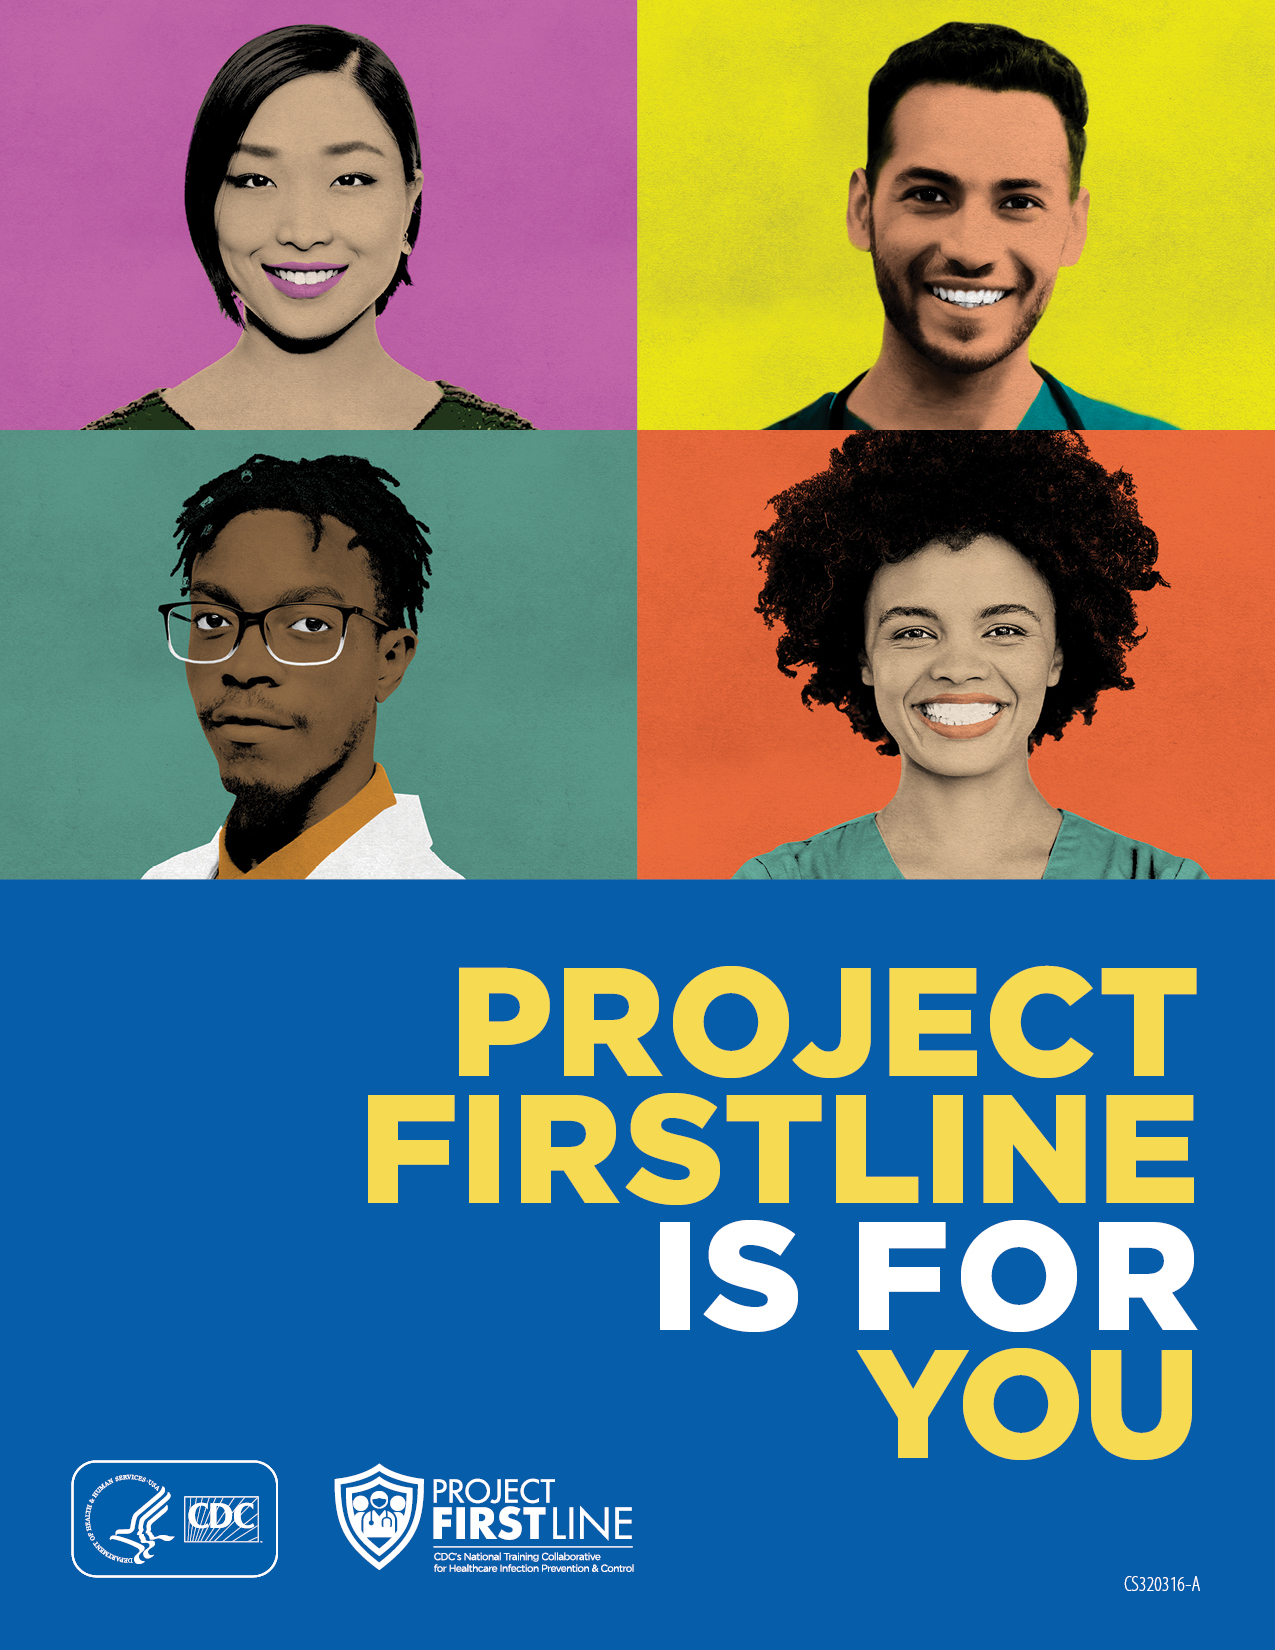 Project Firstline is for you